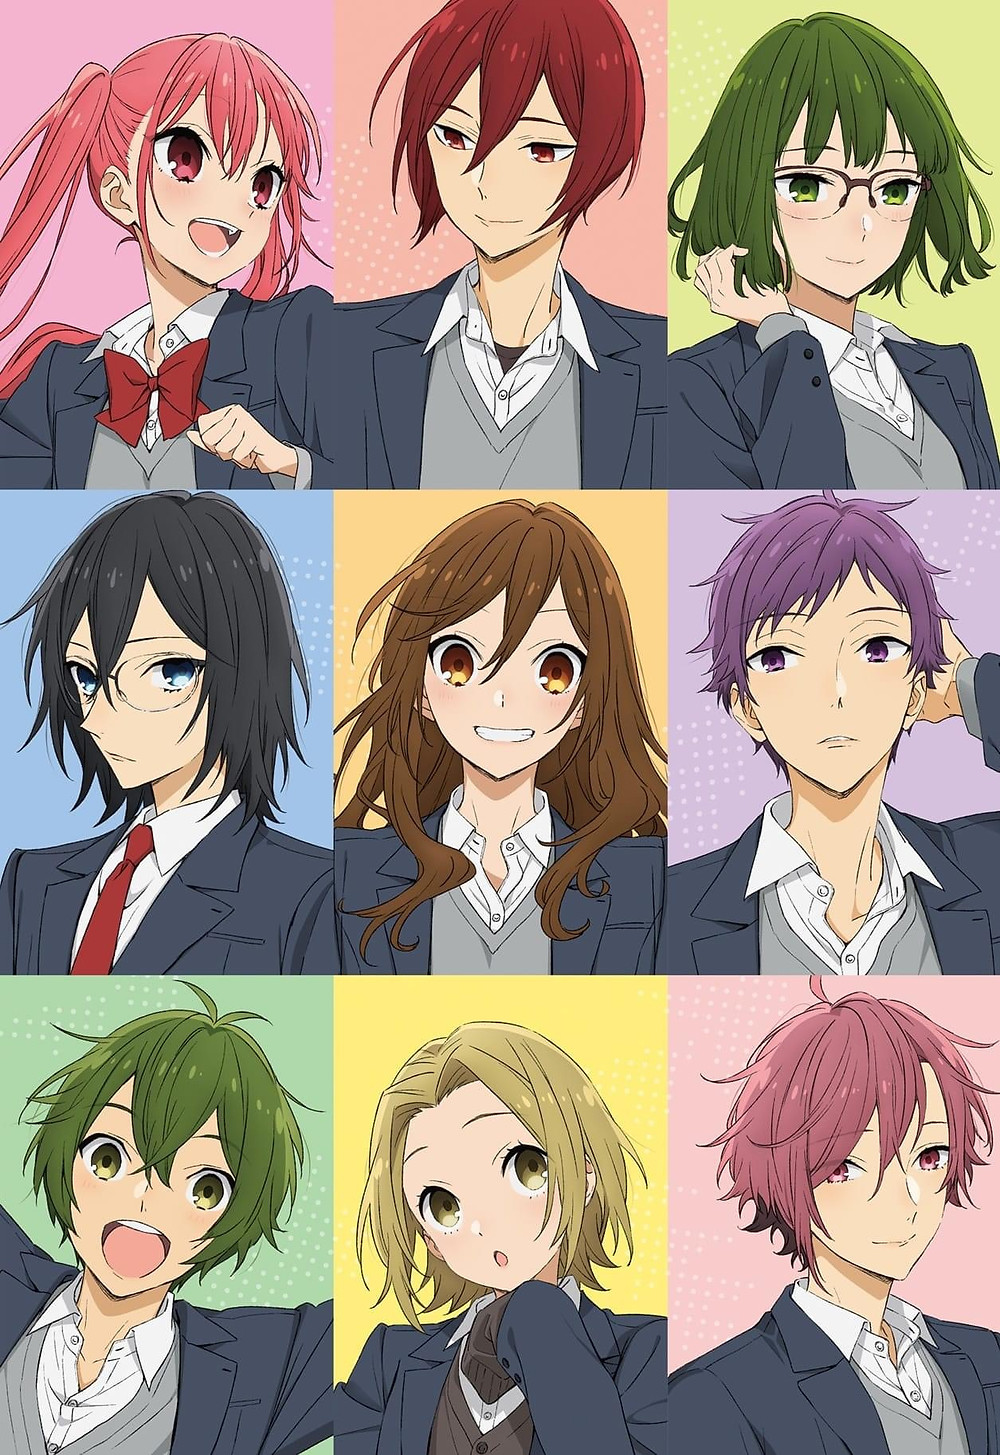 Hori and Miyamura and the students of Class 3-1